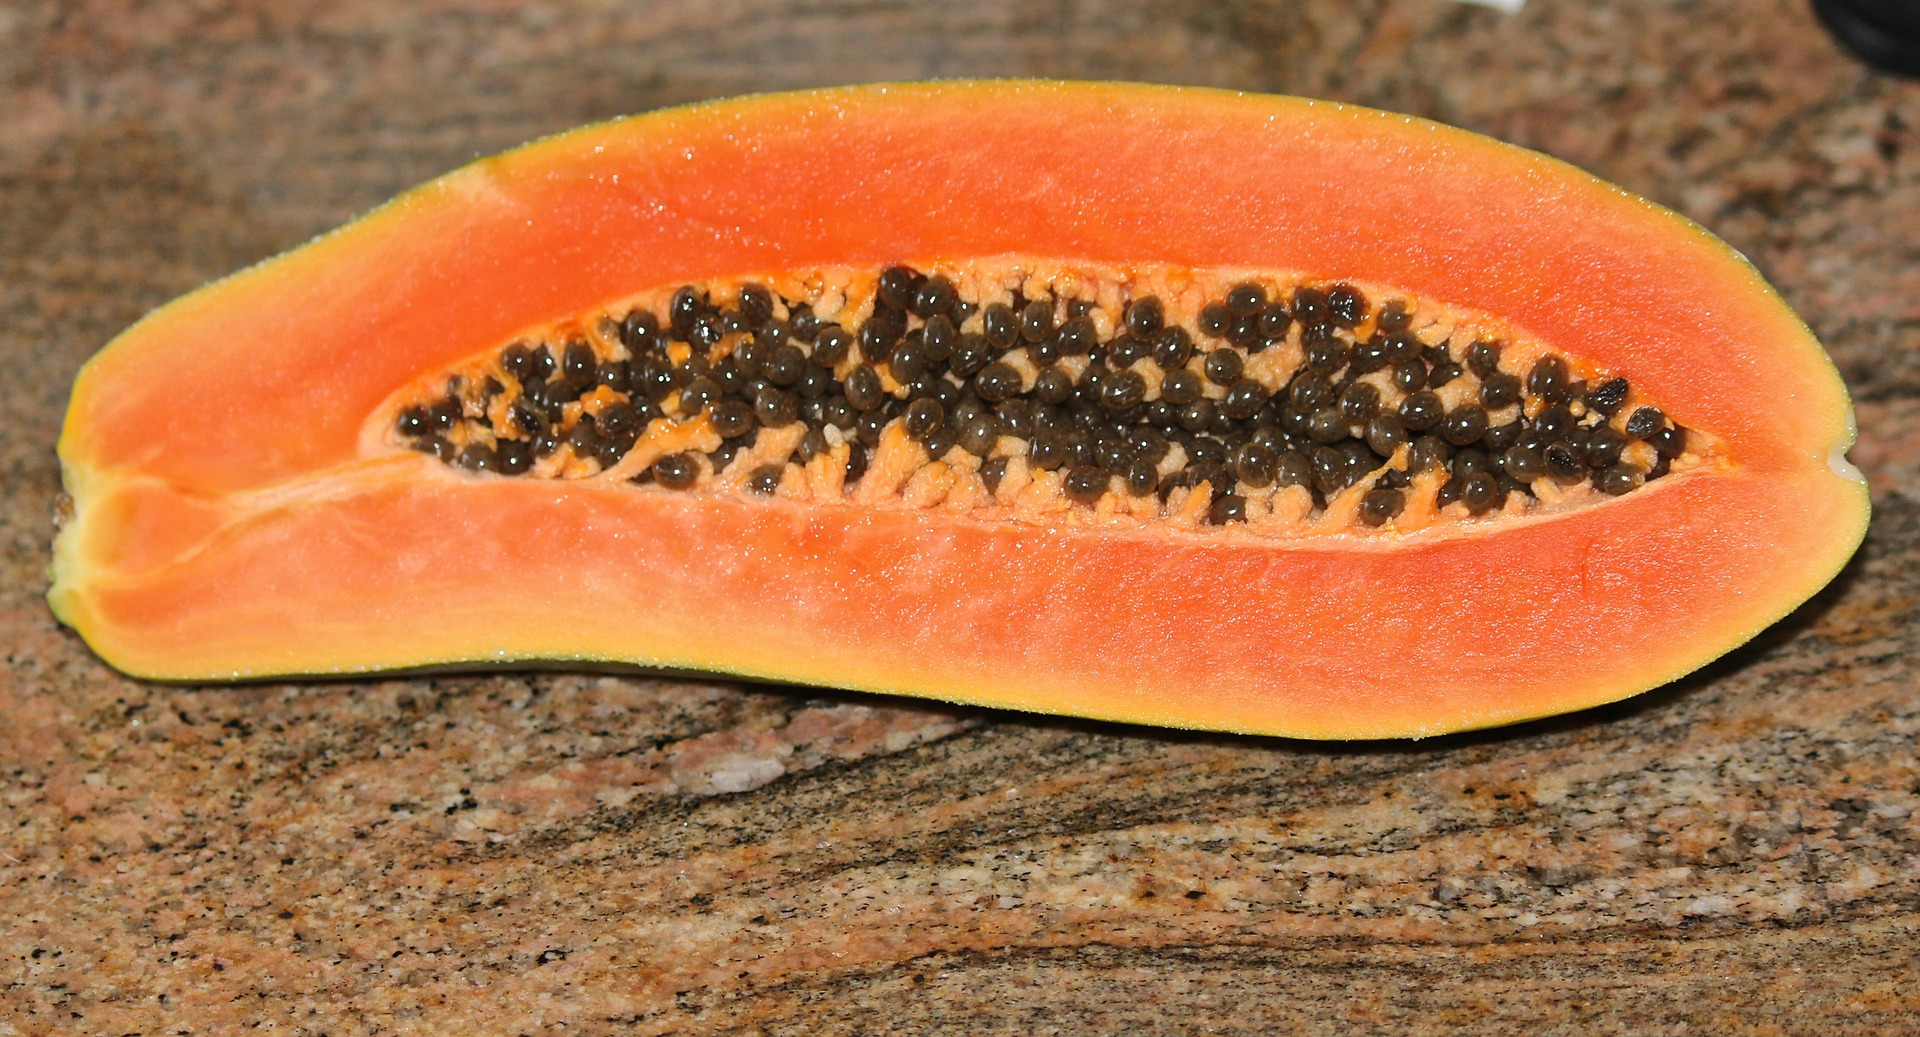 Beneficios de la semilla de papaya